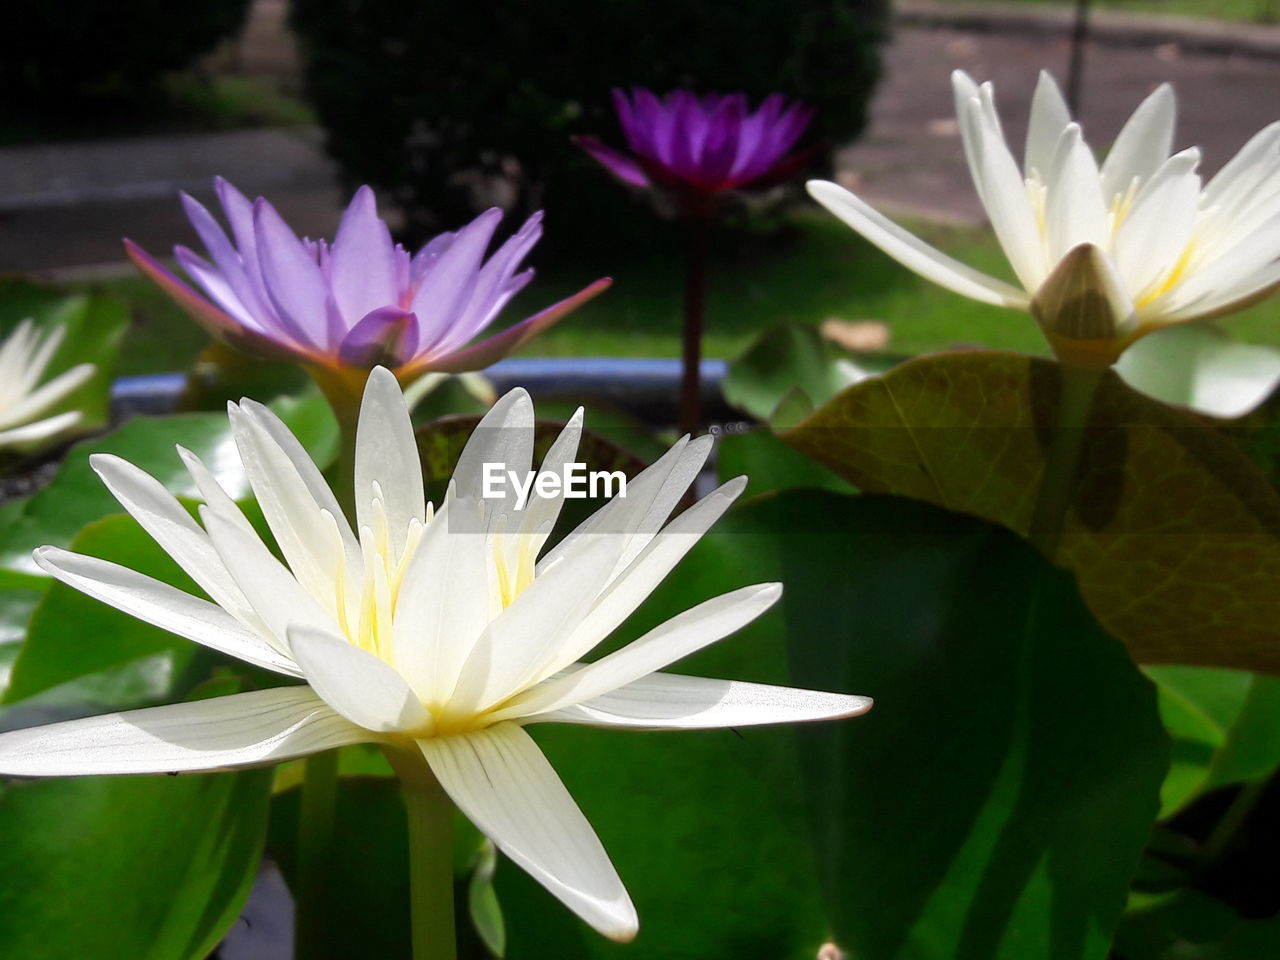 flower, petal, beauty in nature, nature, fragility, flower head, freshness, growth, water lily, plant, blooming, leaf, lotus water lily, no people, white color, day, outdoors, close-up, lotus, water, lily pad, crocus